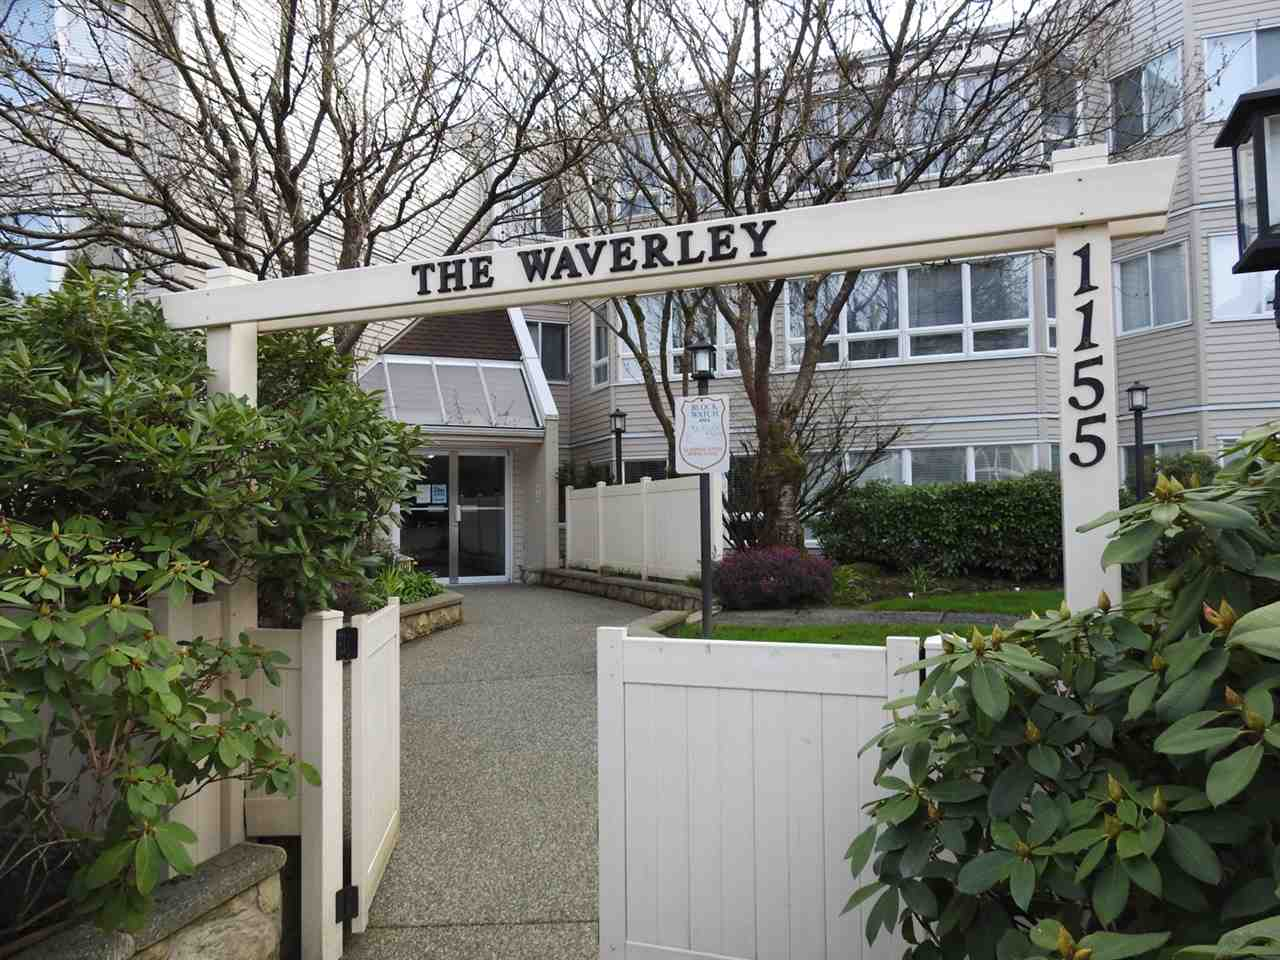 110 1155 ROSS ROAD - Lynn Valley Apartment/Condo for sale, 2 Bedrooms (R2560572) - #1